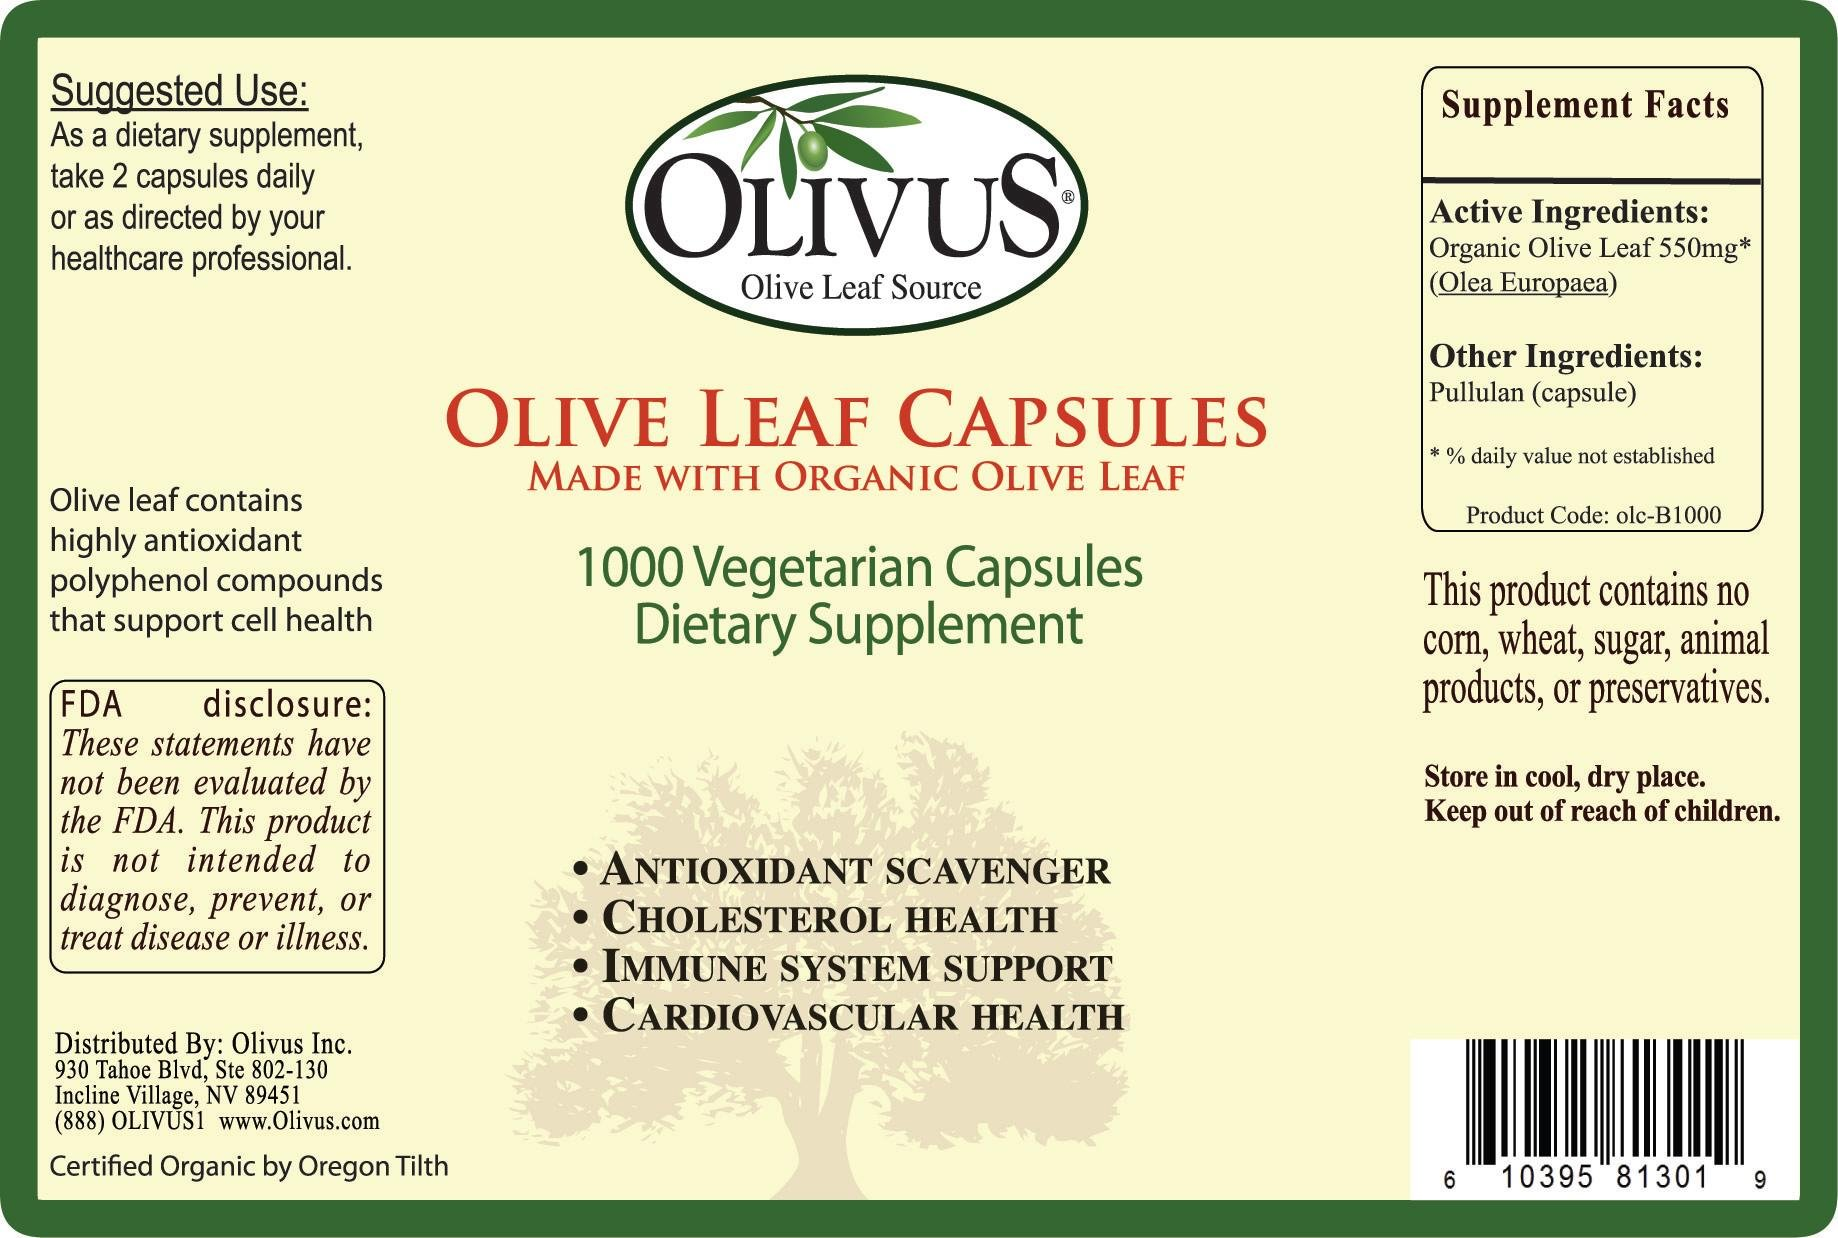 Olivus Olive Leaf Capsules Bulk 1000ct - 550 mg Vegetable Capsules - Pure Organic Olive Leaf Powder with No Fillers - Immune Support Antioxidant Supplement